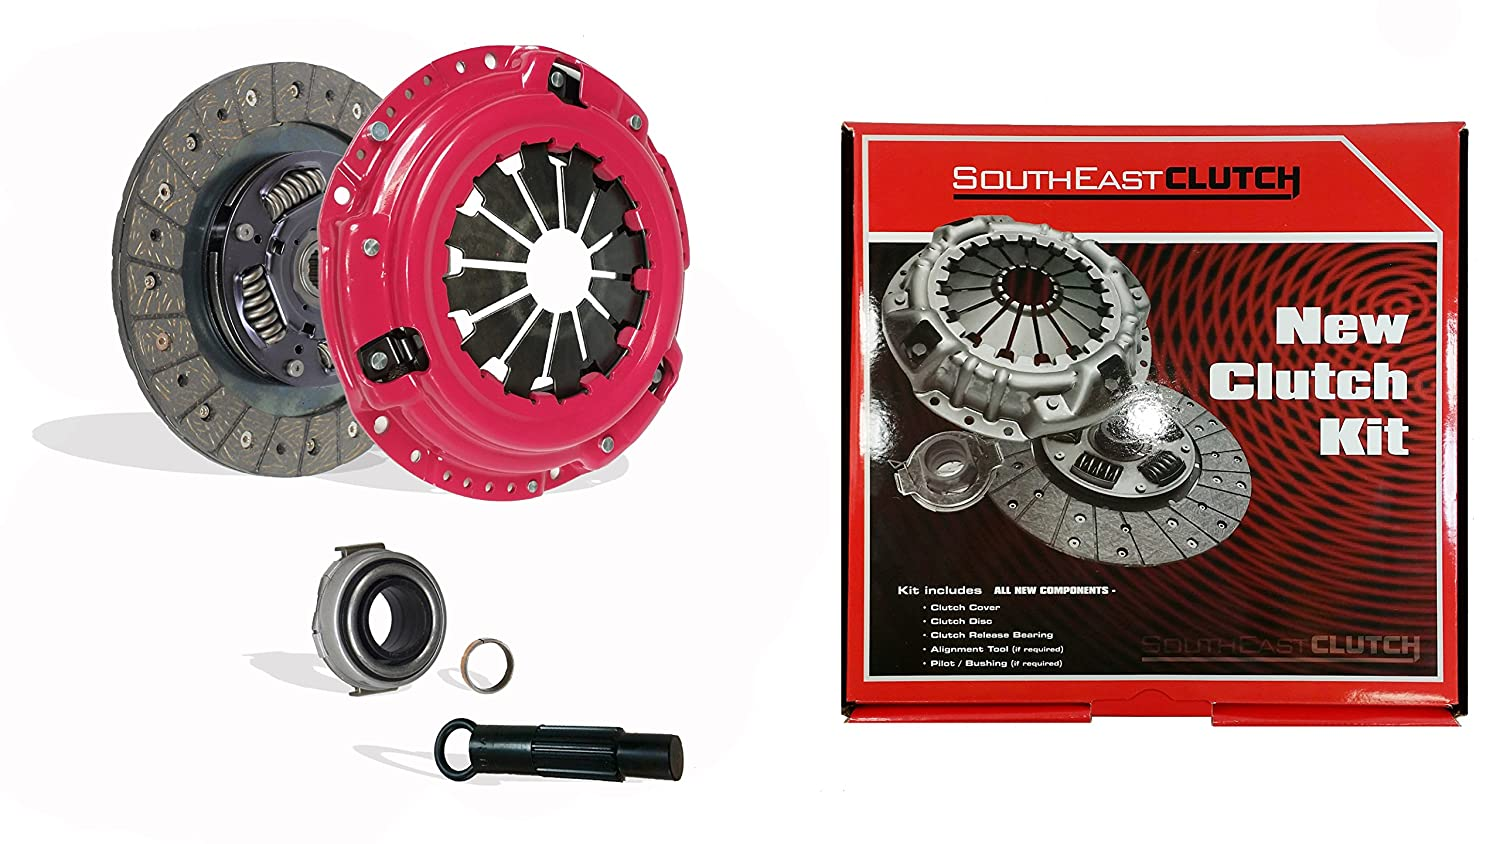 southeast-clutch etapa 1 Kit de embrague Honda Civic, del sol 1.5L 1.6L D15 D16: Amazon.es: Coche y moto